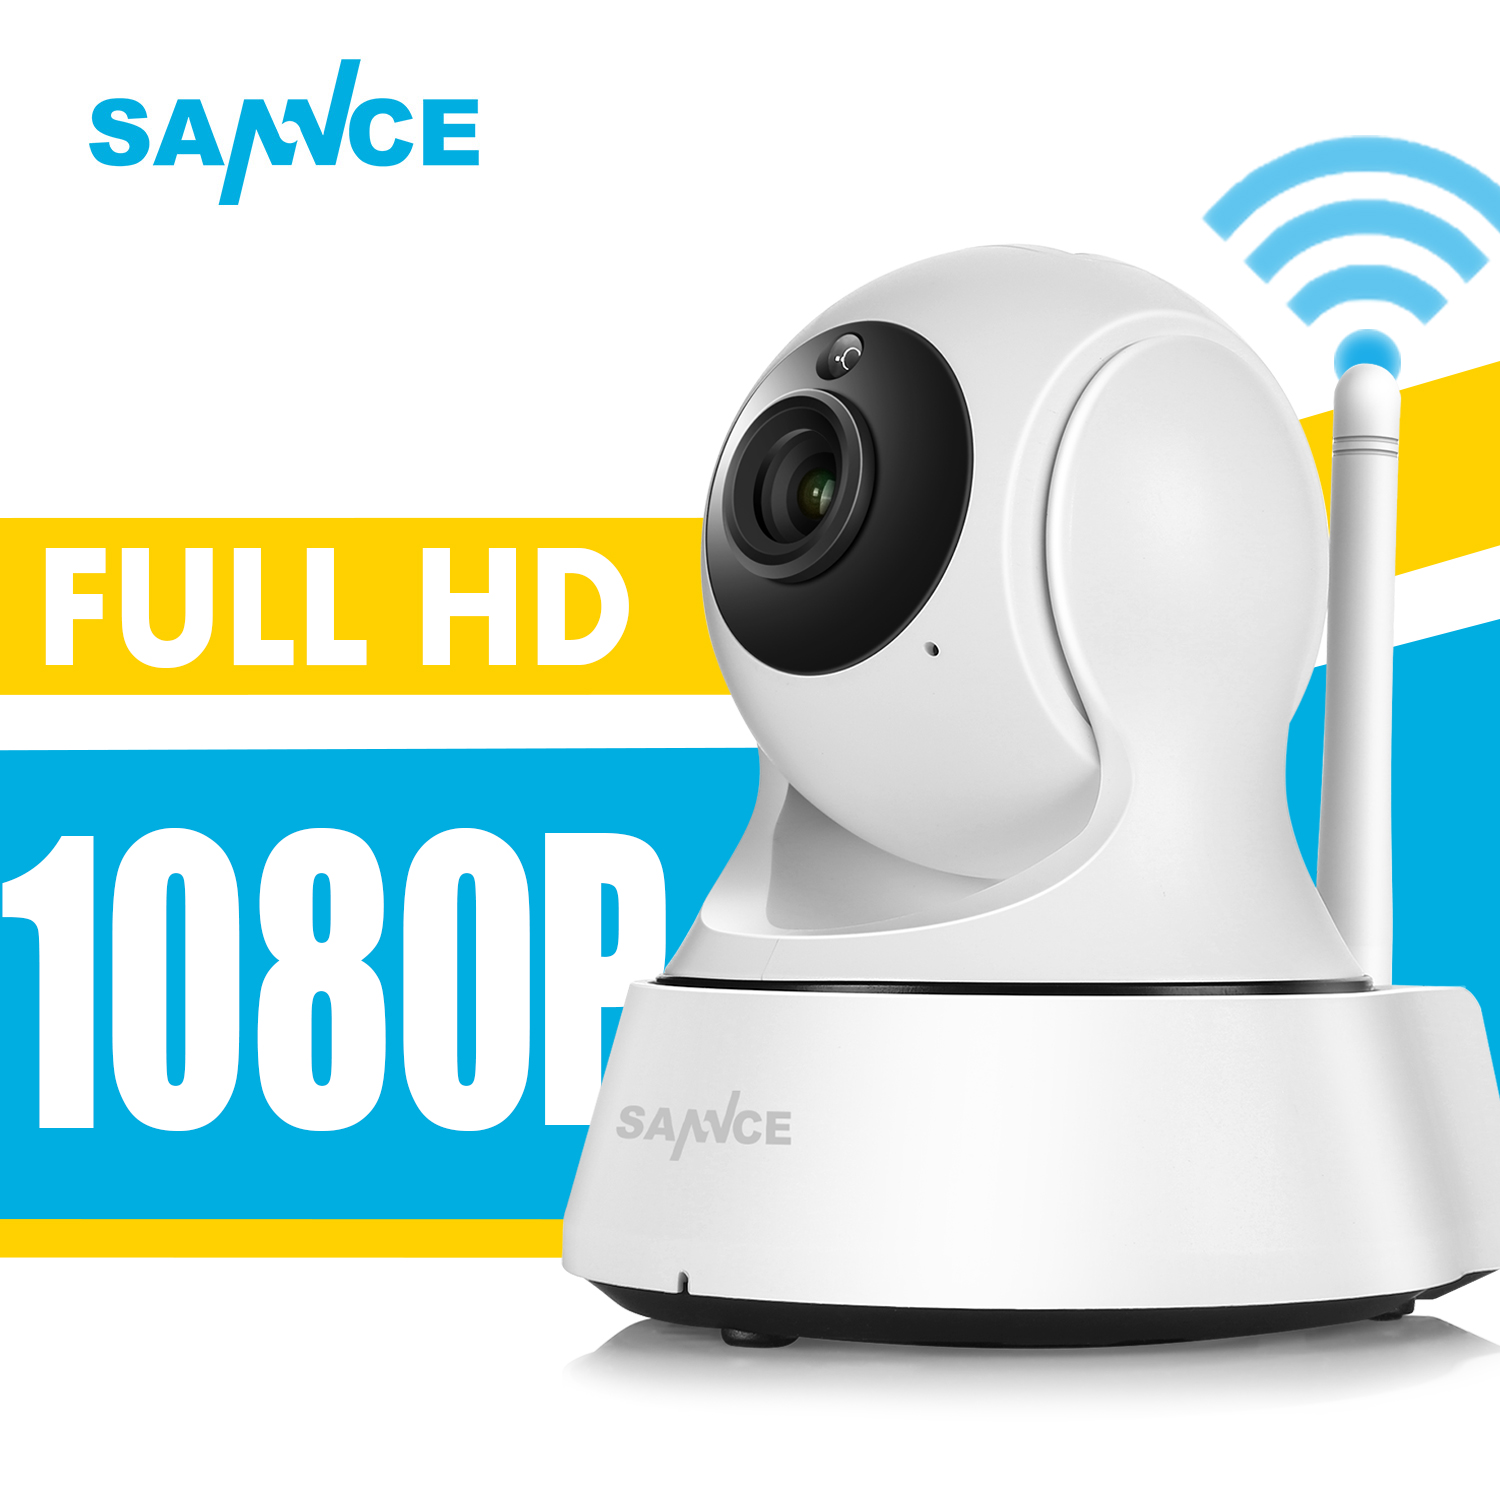 SANNCE Full HD 1080P Mini Wi-fi Camera Wireless IP Sucurity CCTV Camera Wifi Network Smart Night Vision Baby Monitor 10ft cable